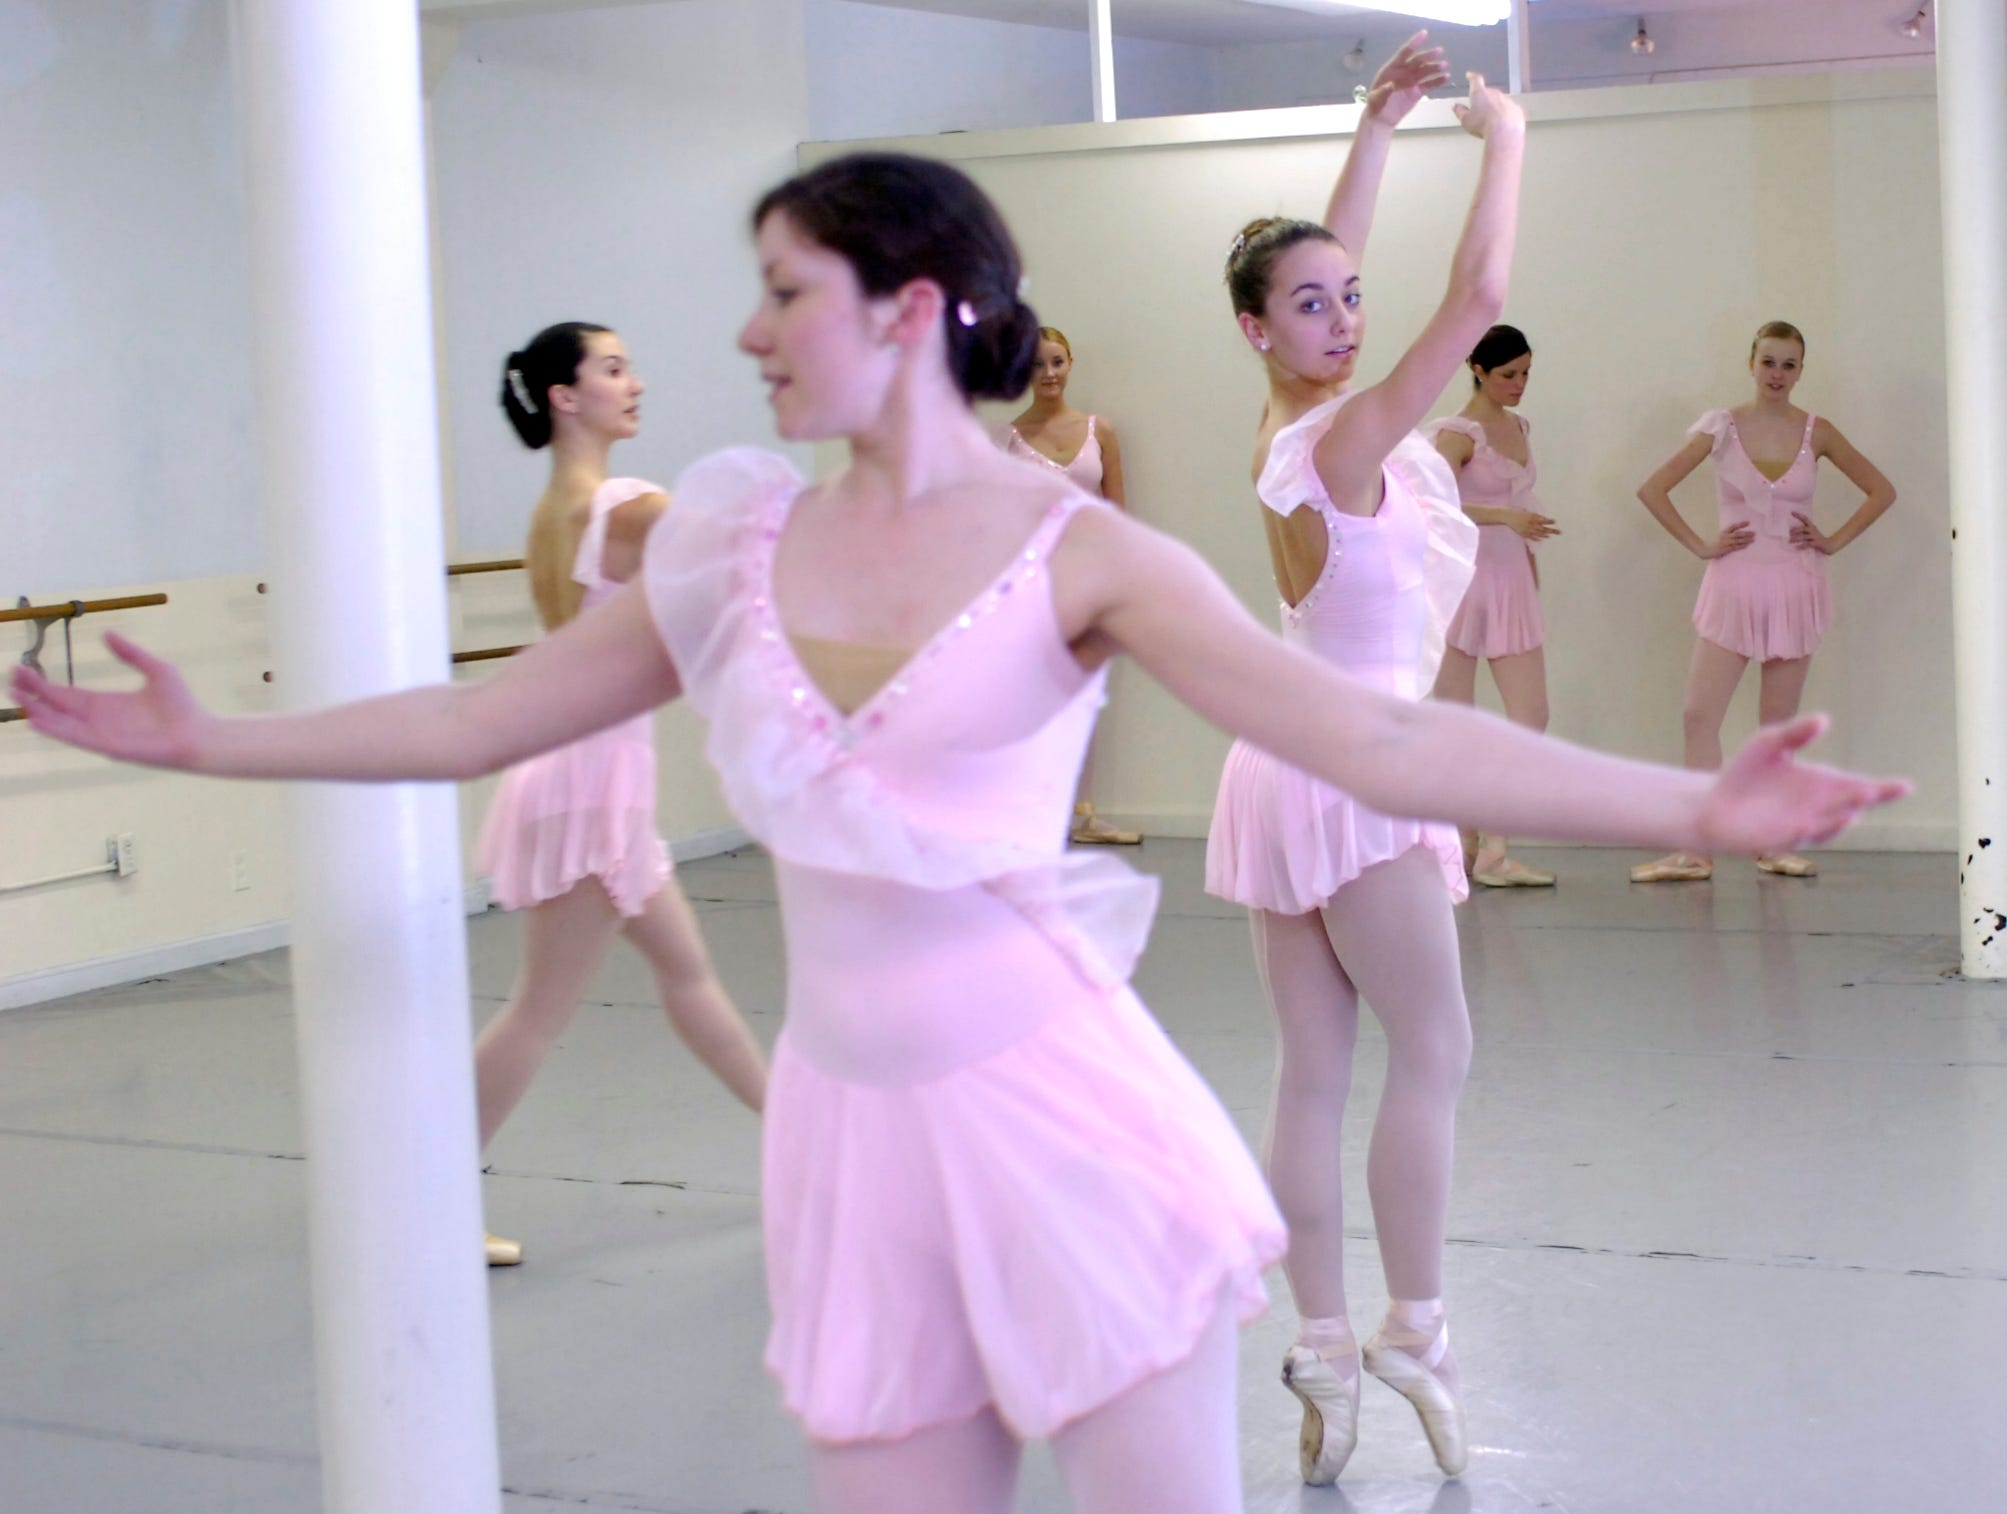 From left, Heather Wilcoxon, Sarah Dickinson, Megan Baker, Anne Souder, Caroline Anglim, and Chandler Blum rehearse the Appalachian Ballet Company's Spring Concert at their studios in Maryville Thursday. The Appalachian Ballet Company is rehearsing for their Spring Concert to be performed at the Bijou Theatre on March 29 at 2:00 and 8:00 p.m. Photo by Saul Young, Knoxville News Sentinel staff